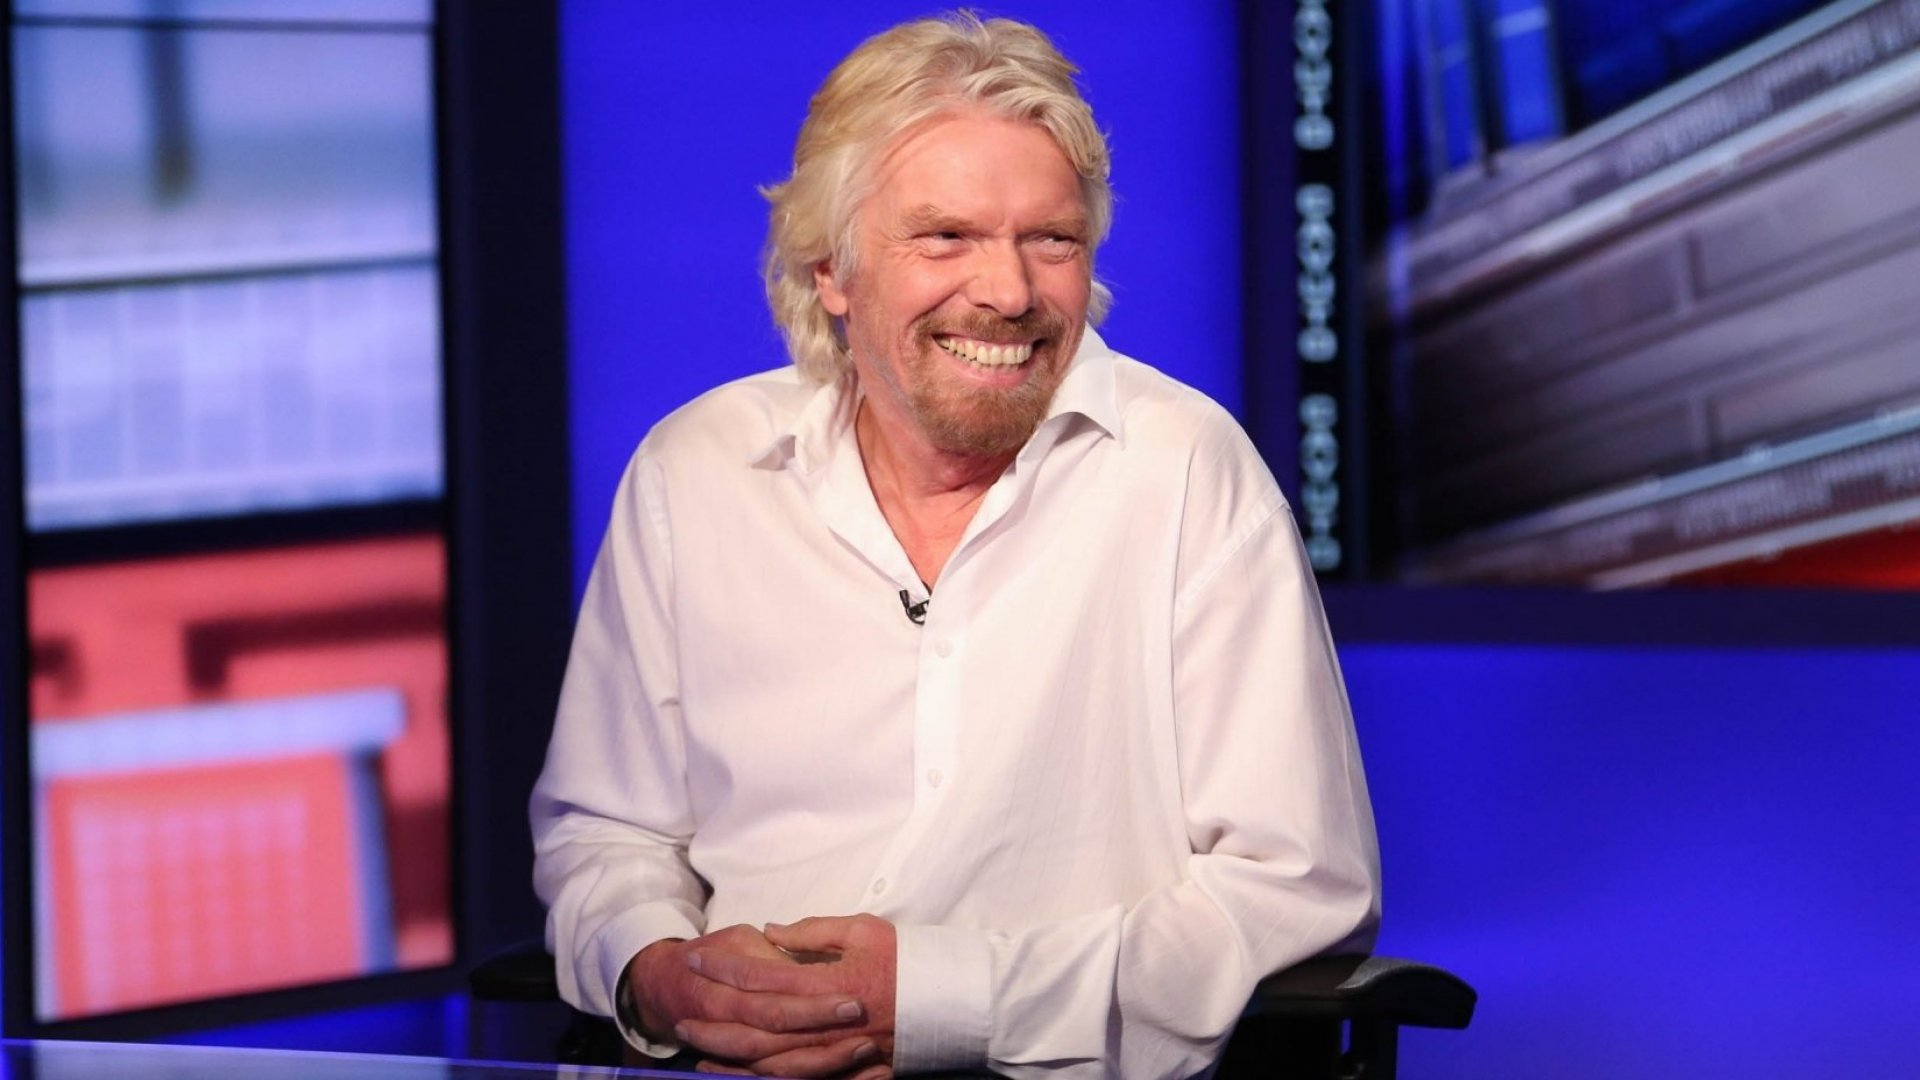 Richard Branson Just Hinted That He's Getting Involved With the Hyperloop